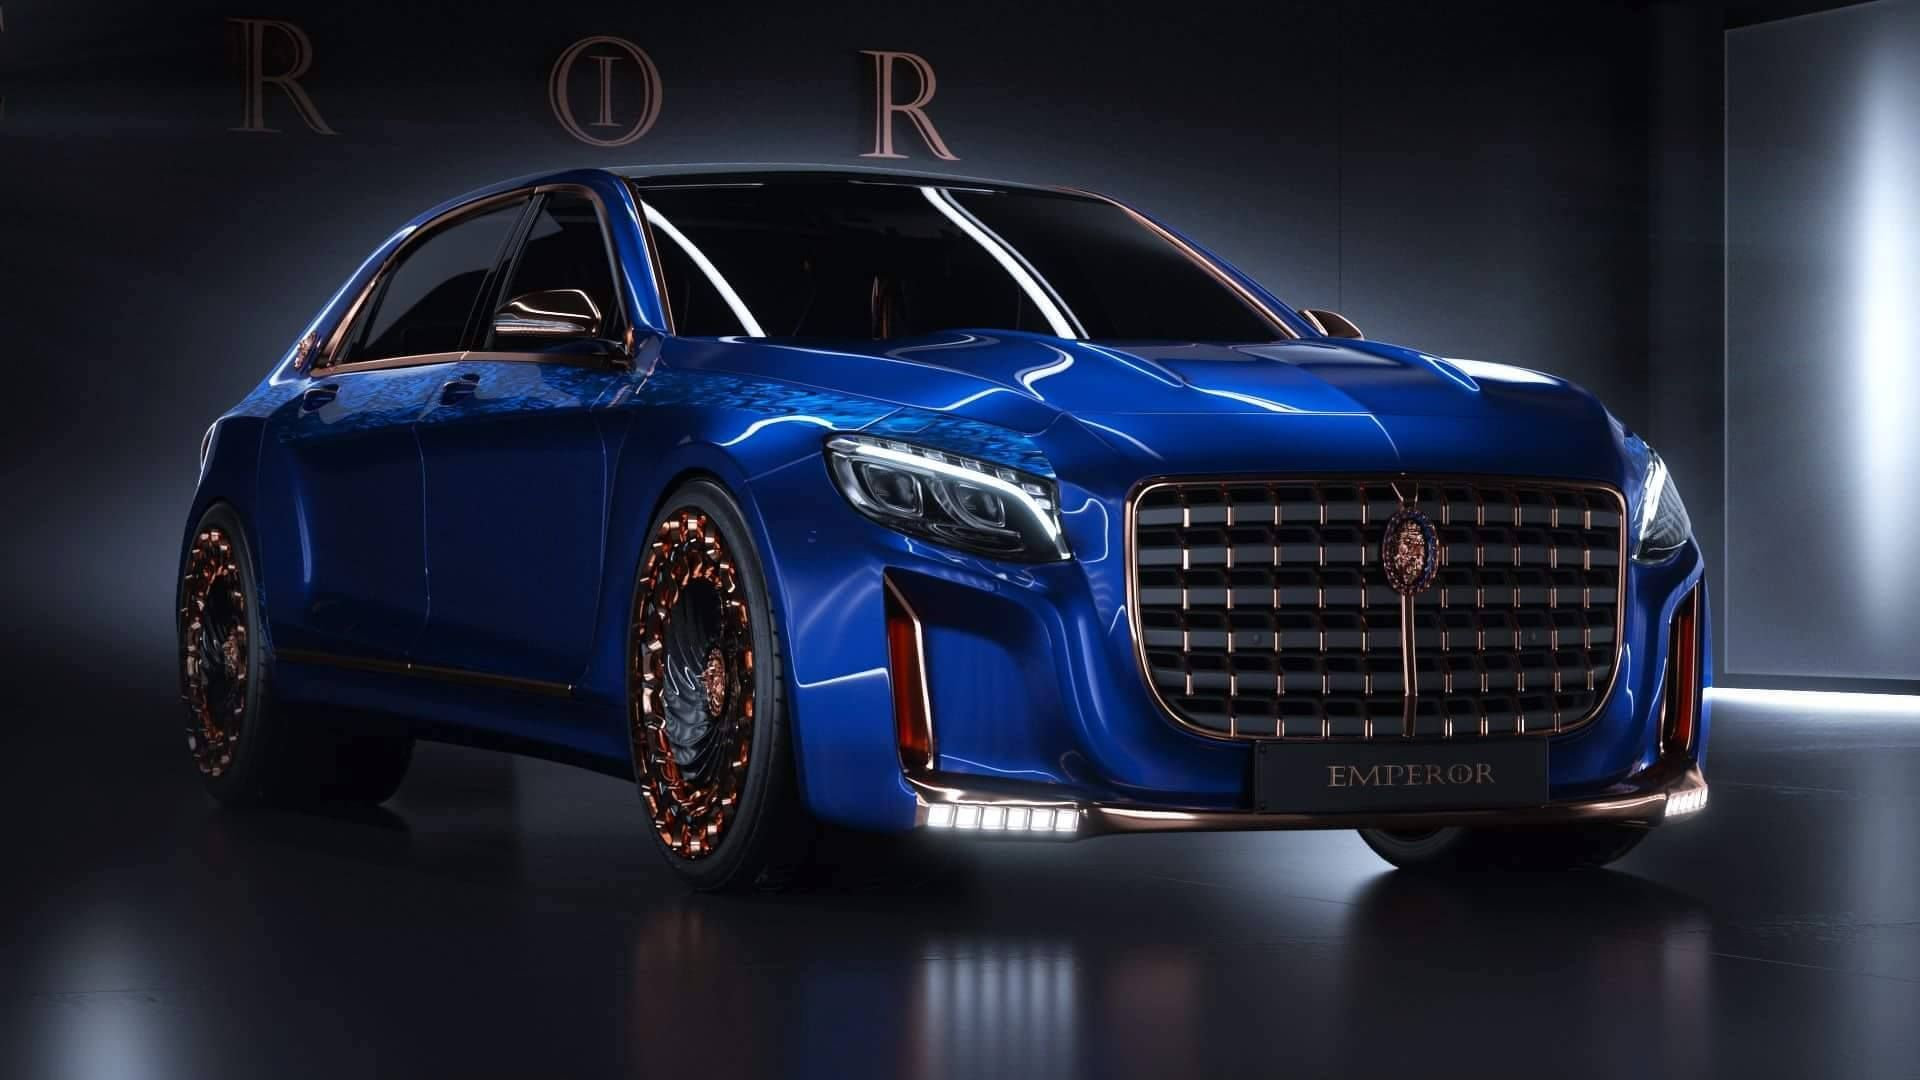 The Scaldarsi Emperor I is a Mercedes Maybach S600 taken to 11 on